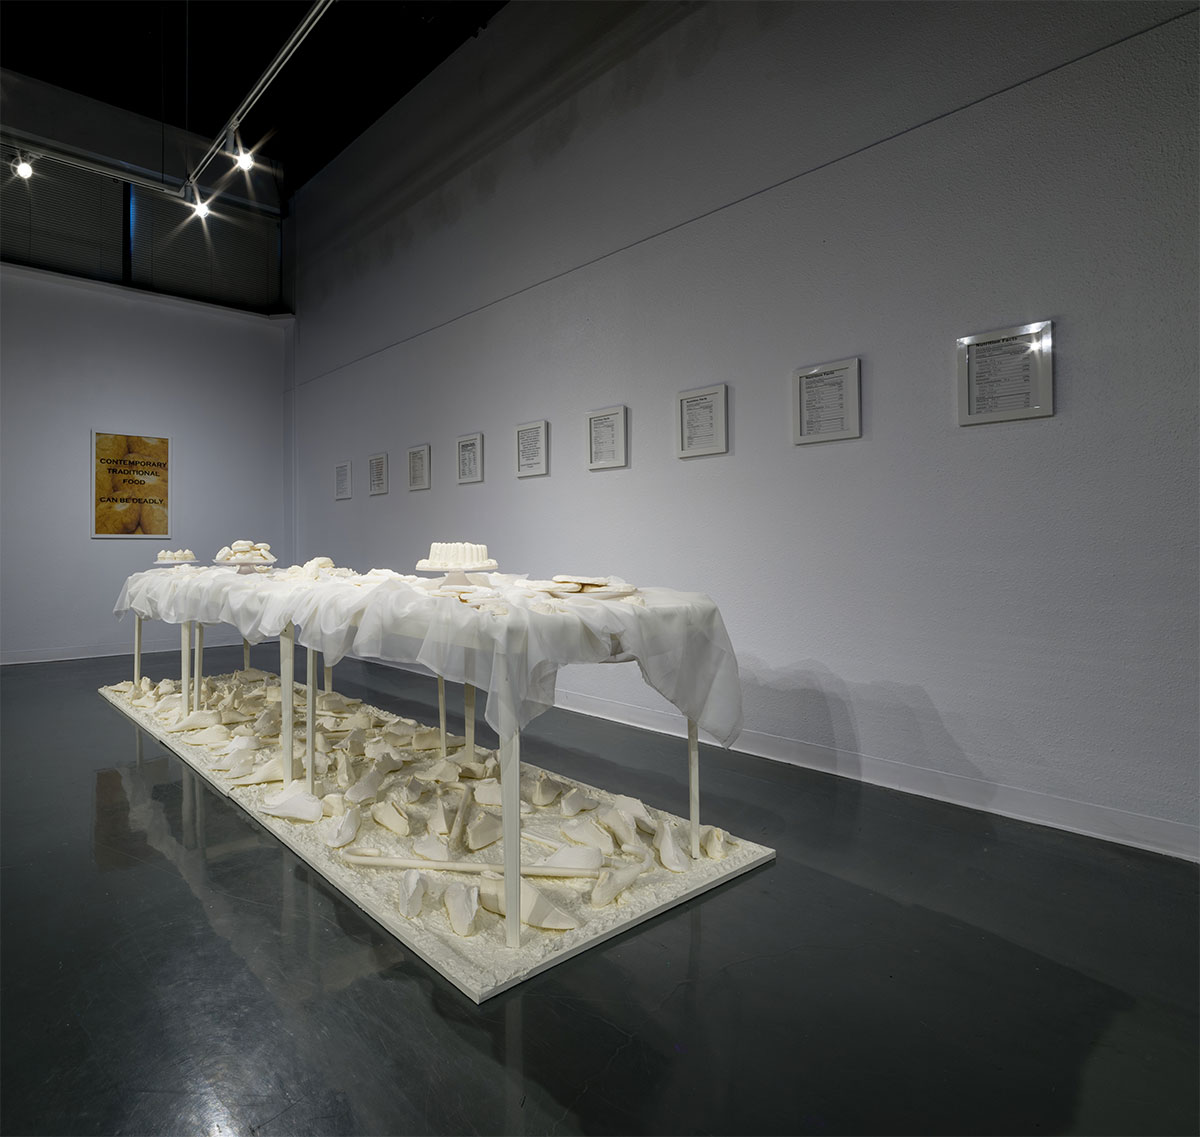 Tables aligned length-wise with all-white junk food on a plinth with all-white shoe forms scattered beneath.